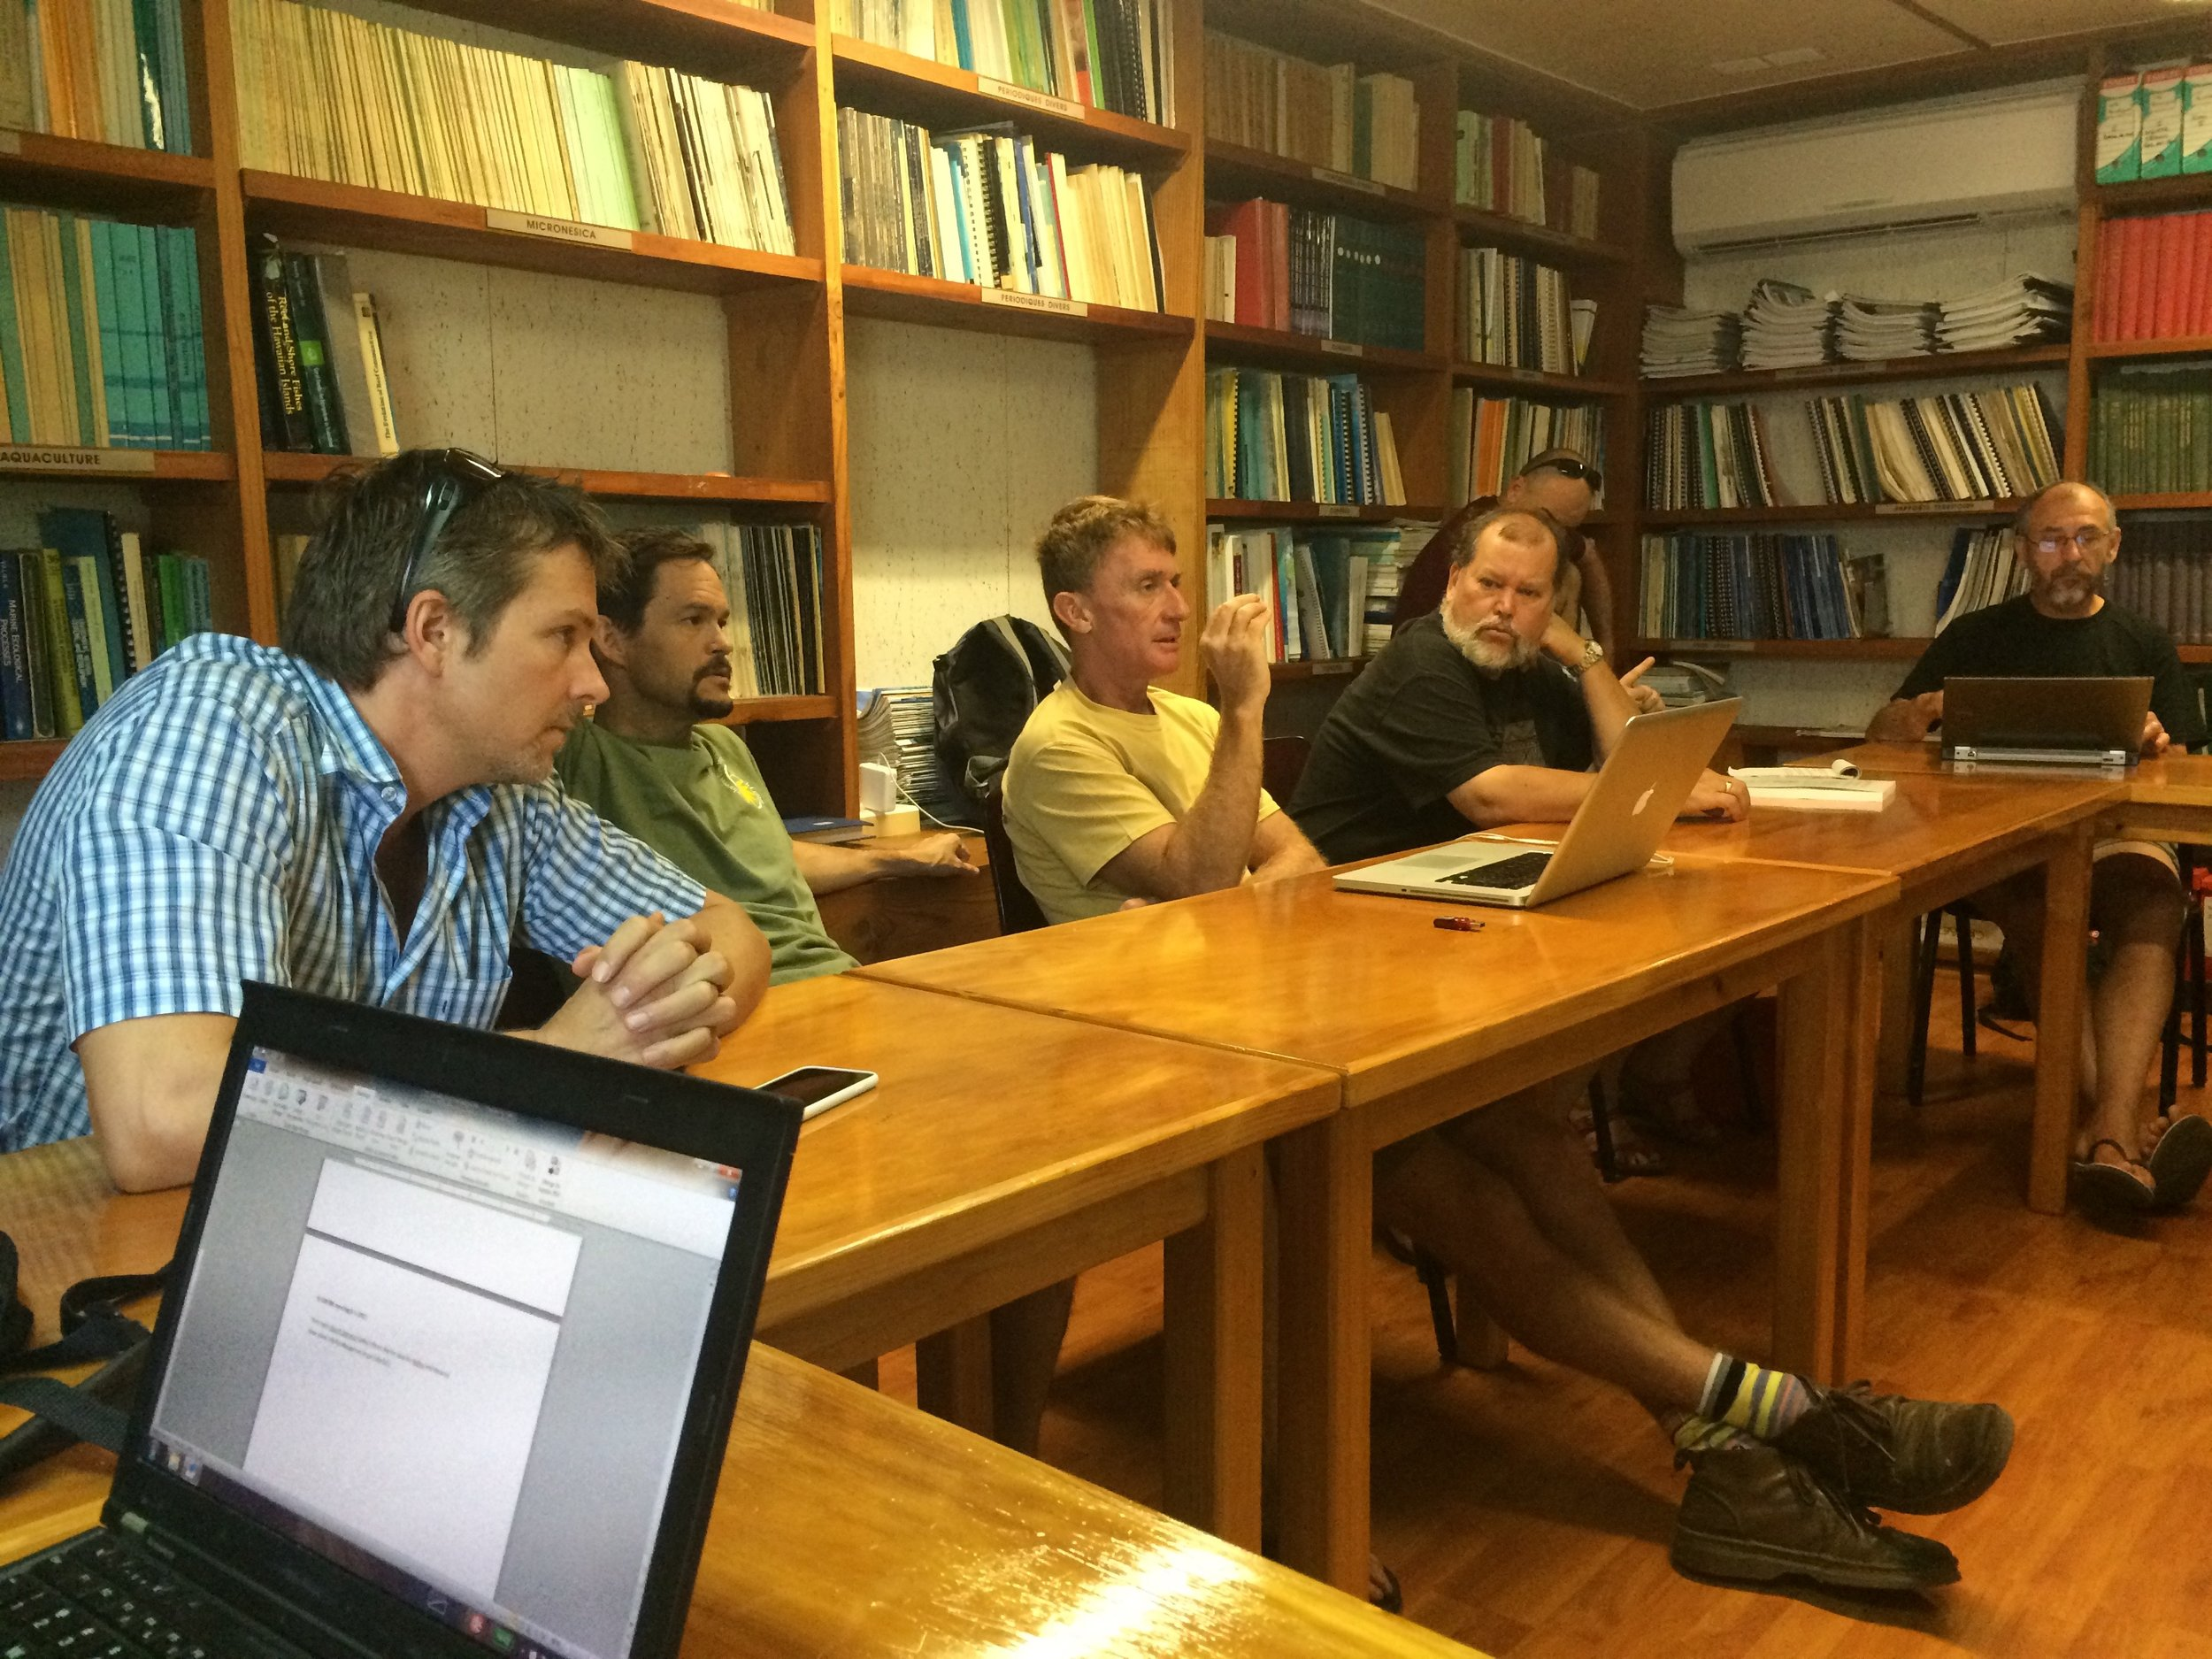 Meeting between the Moorea IDEA and CRIOBE scientists on Moorea. The CRIOBE is one of France's preeminent laboratories for the study of coral reef ecosystems.